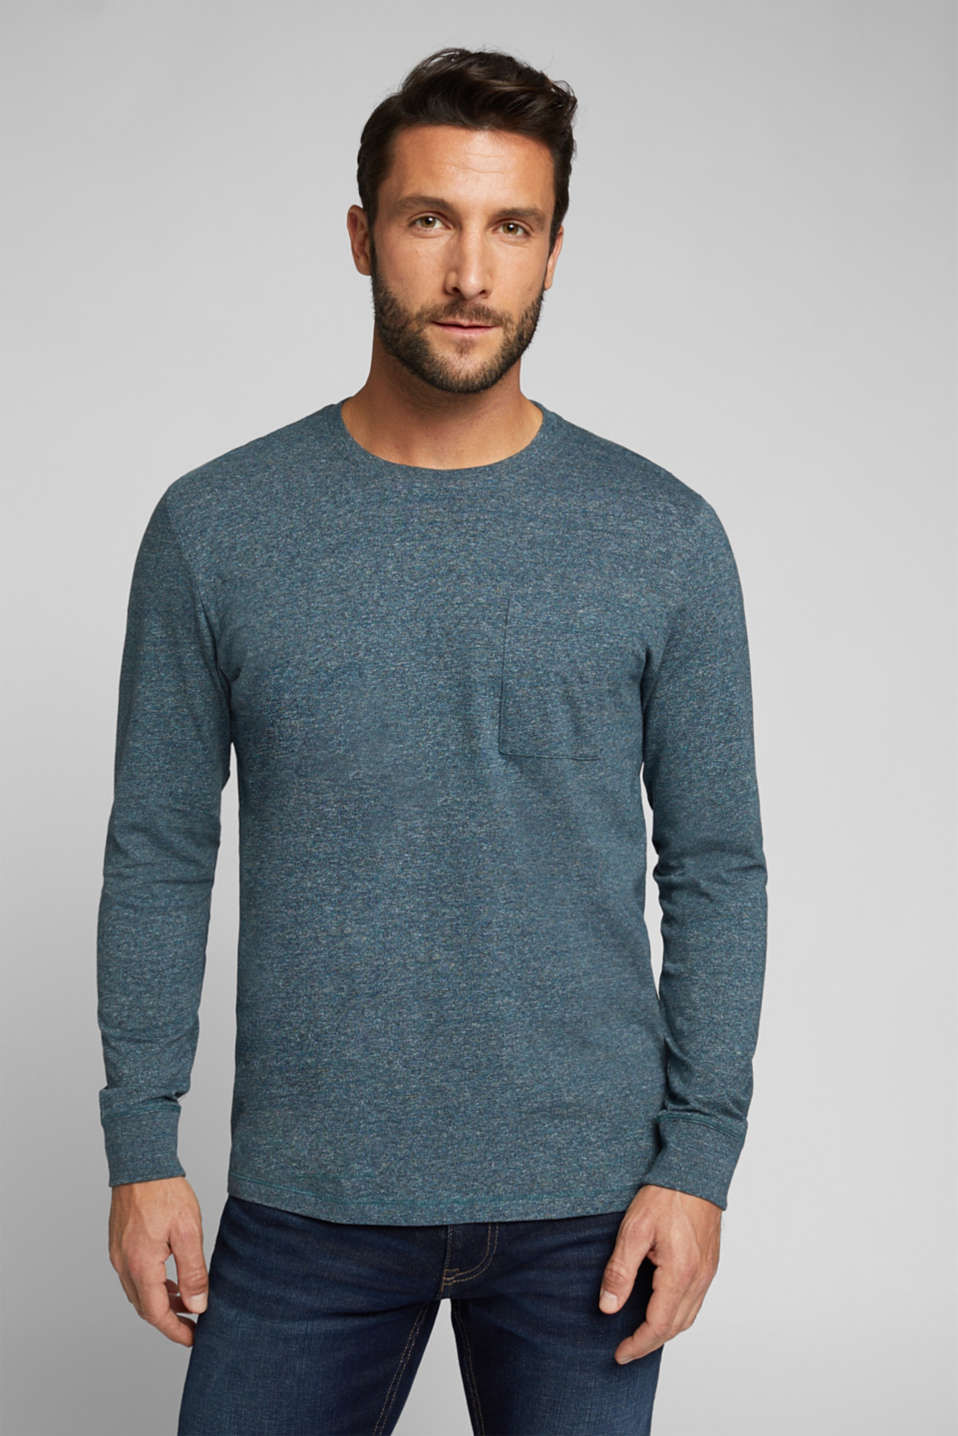 Esprit - Long sleeve jersey top, 100% organic cotton